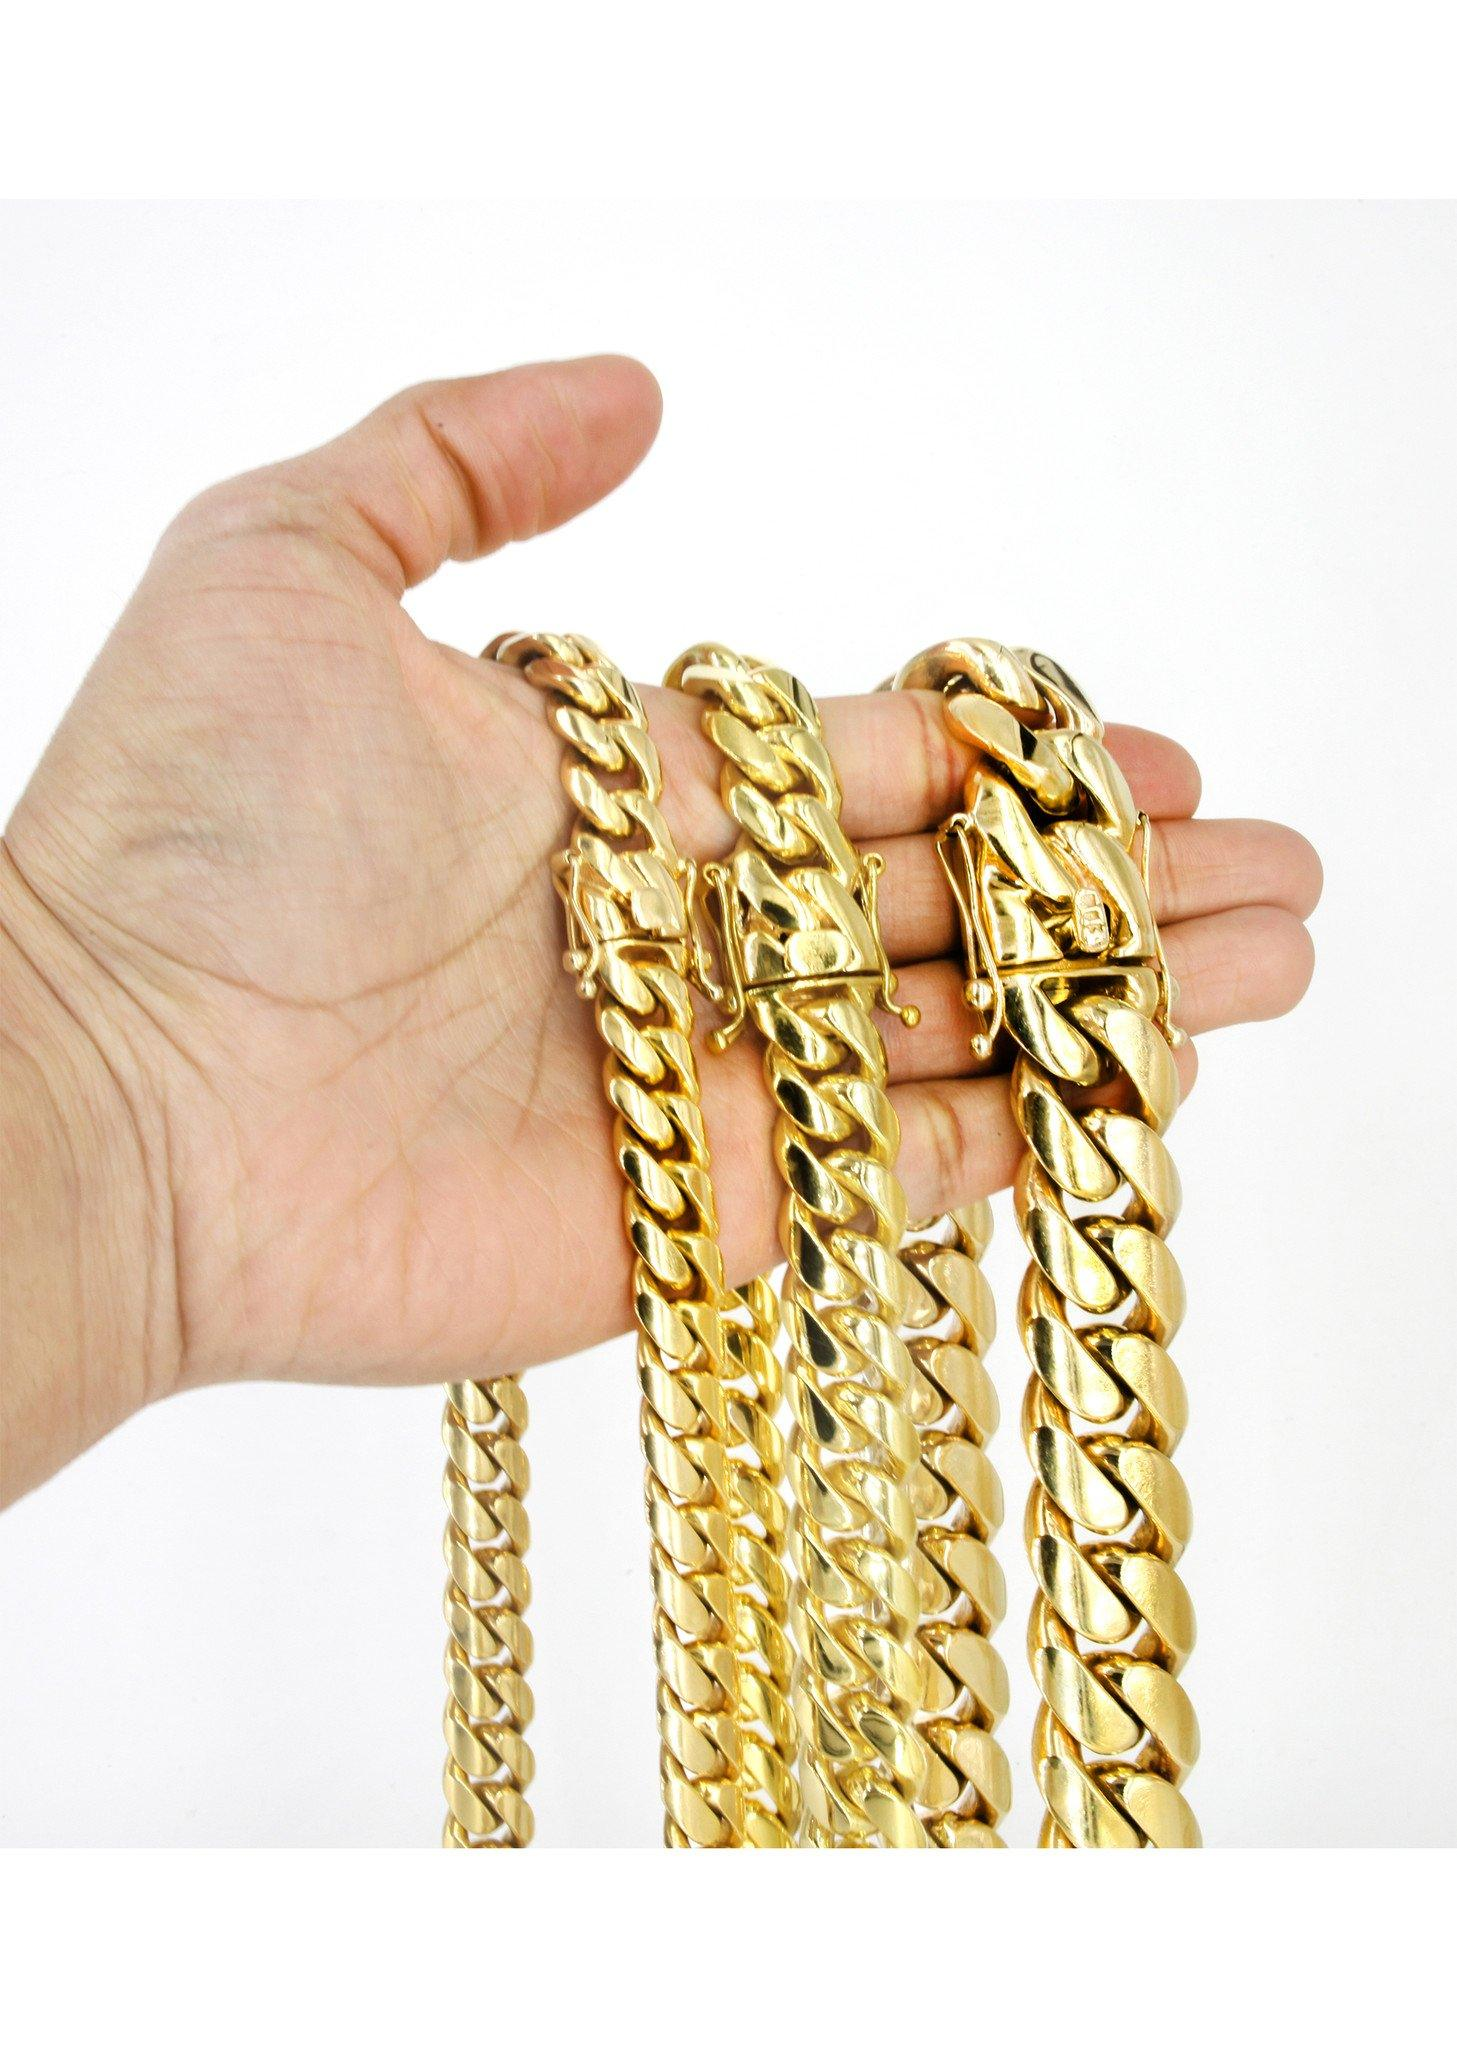 7fcb77585ac1e Heavy Solid Gold Miami Cuban Link Chain Customizable (10MM-20MM ...